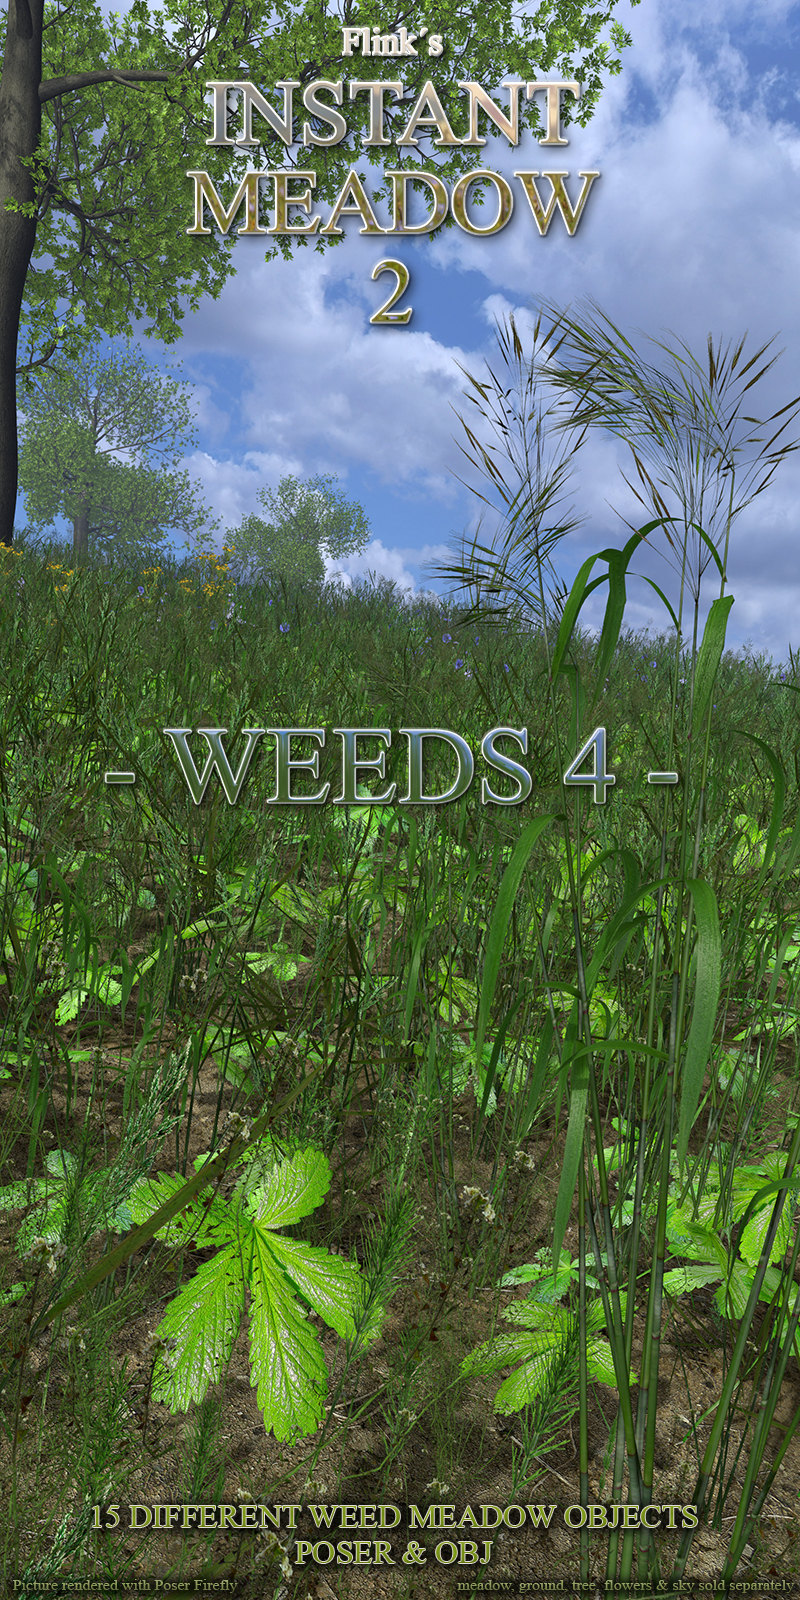 Flinks Instant Meadow 2 - Weeds 4